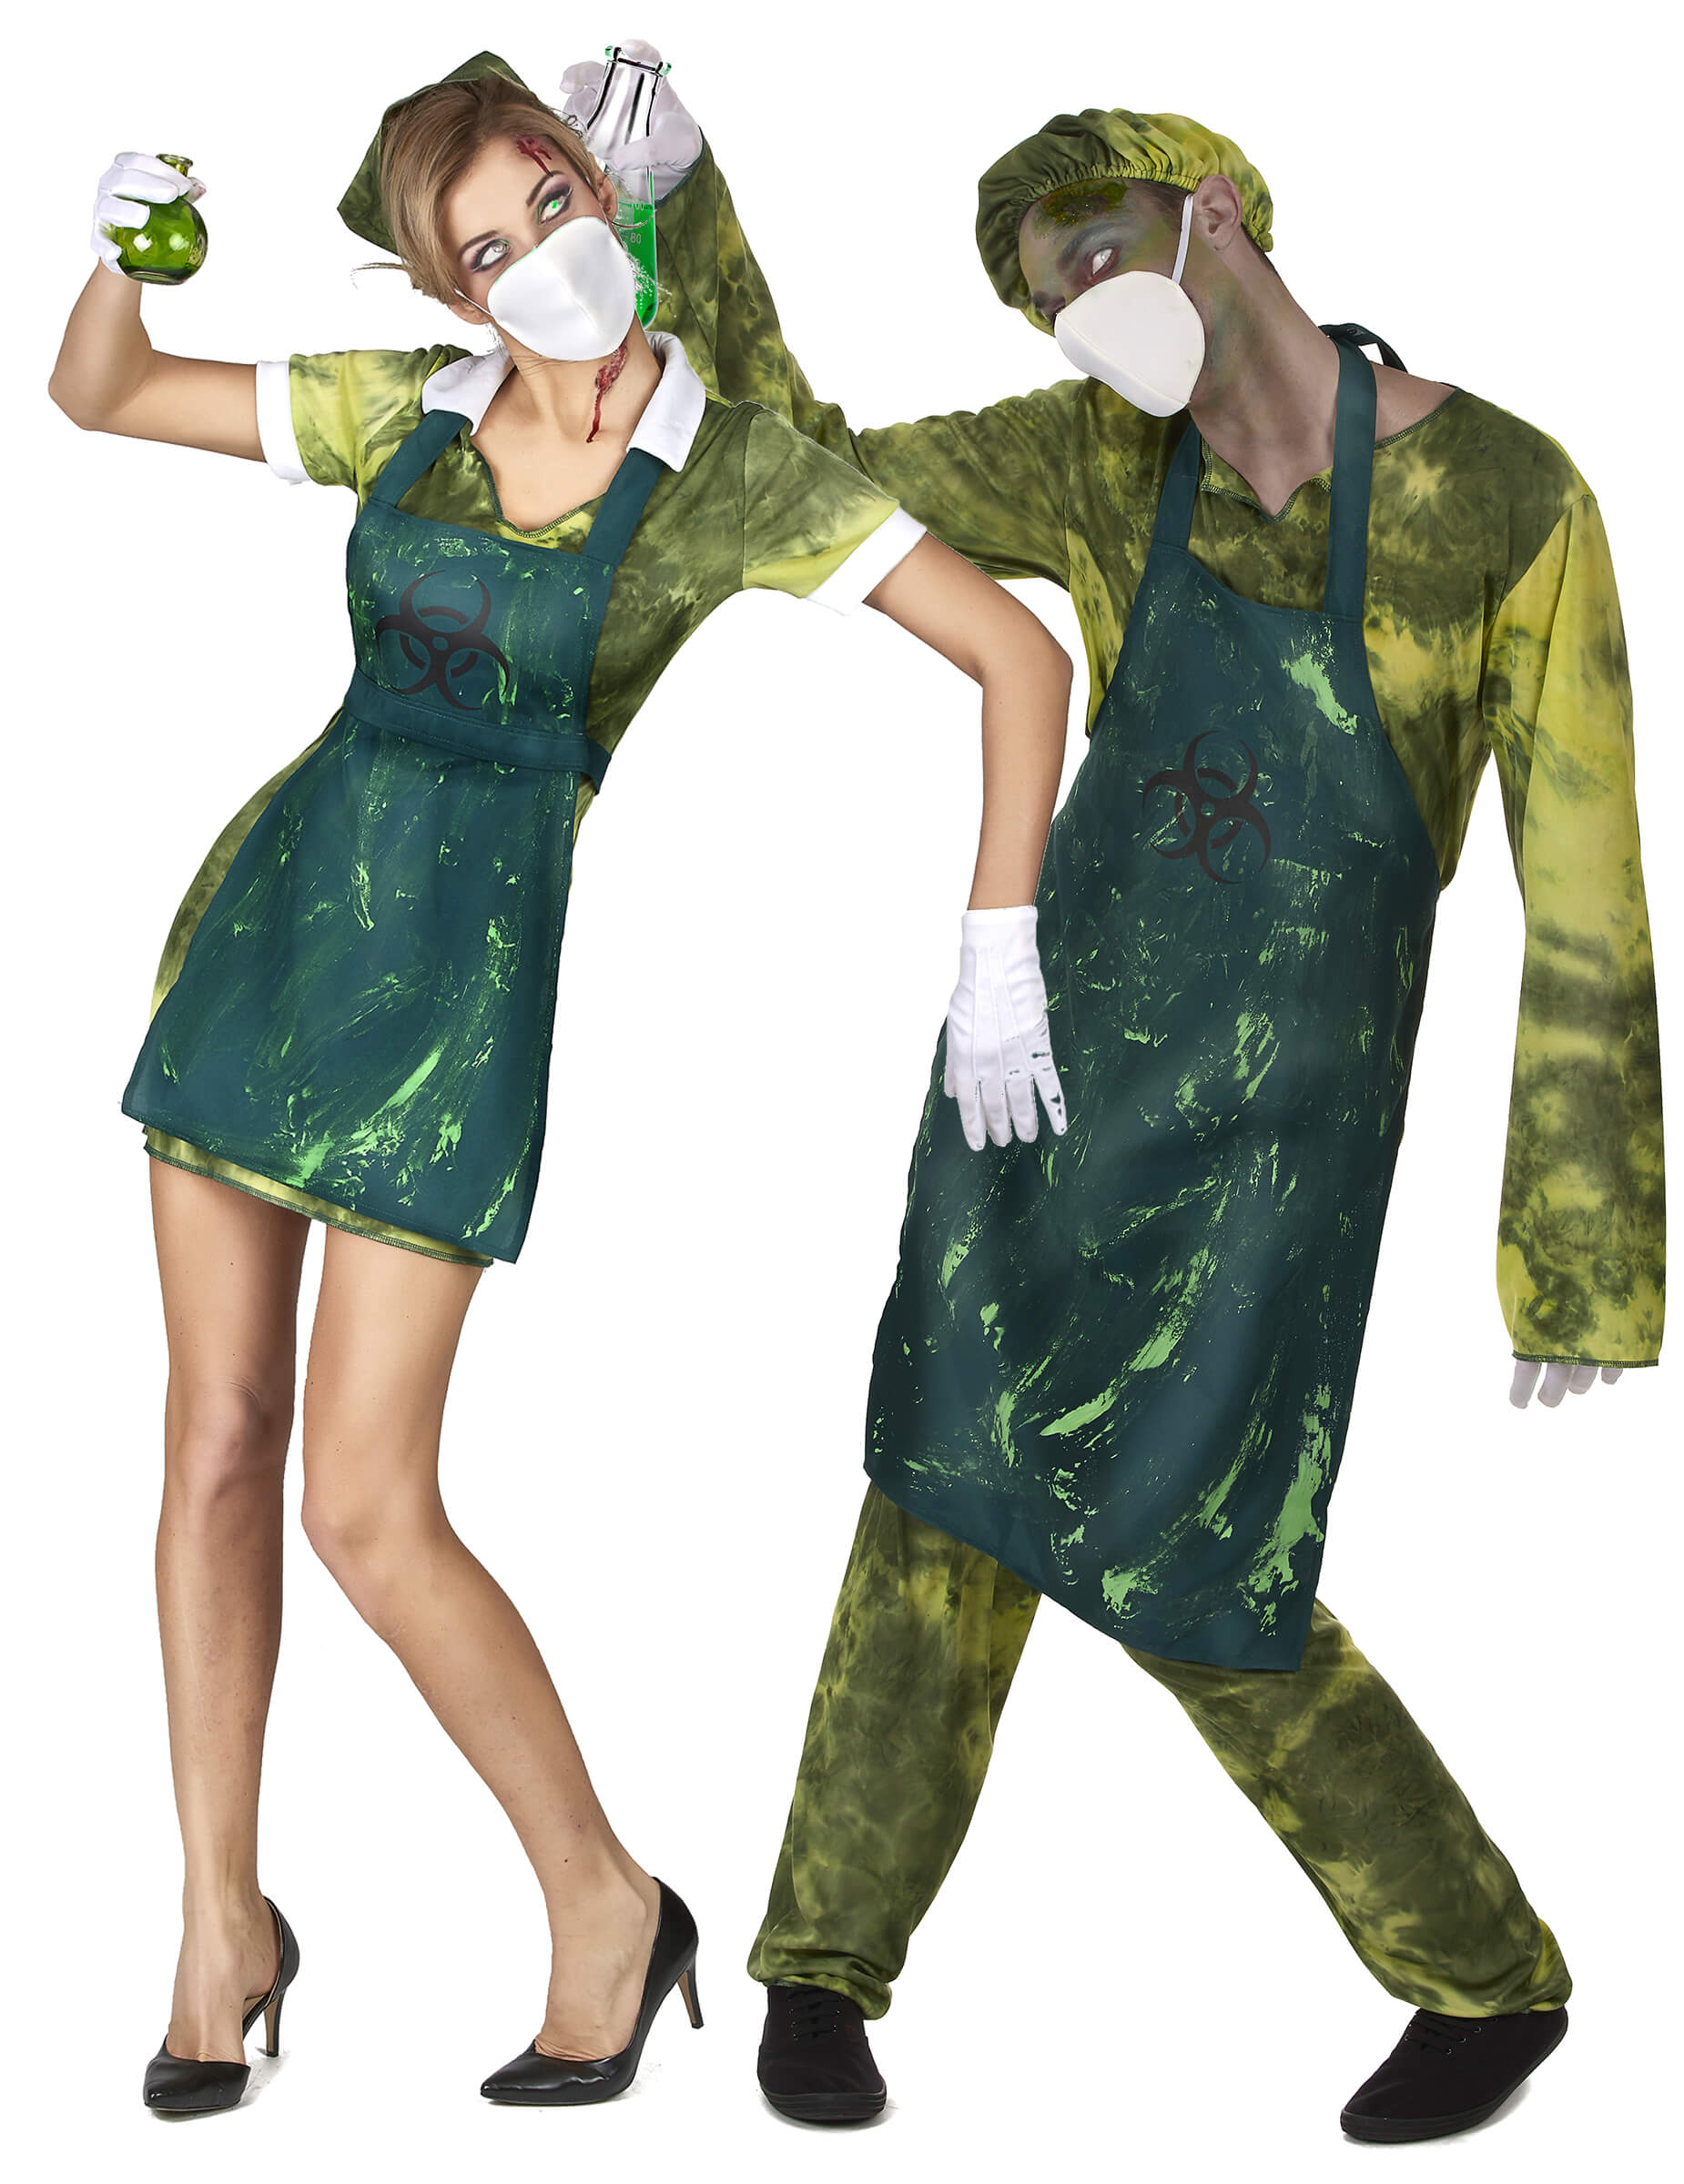 radioactive scientist couple funny halloween costume for couple